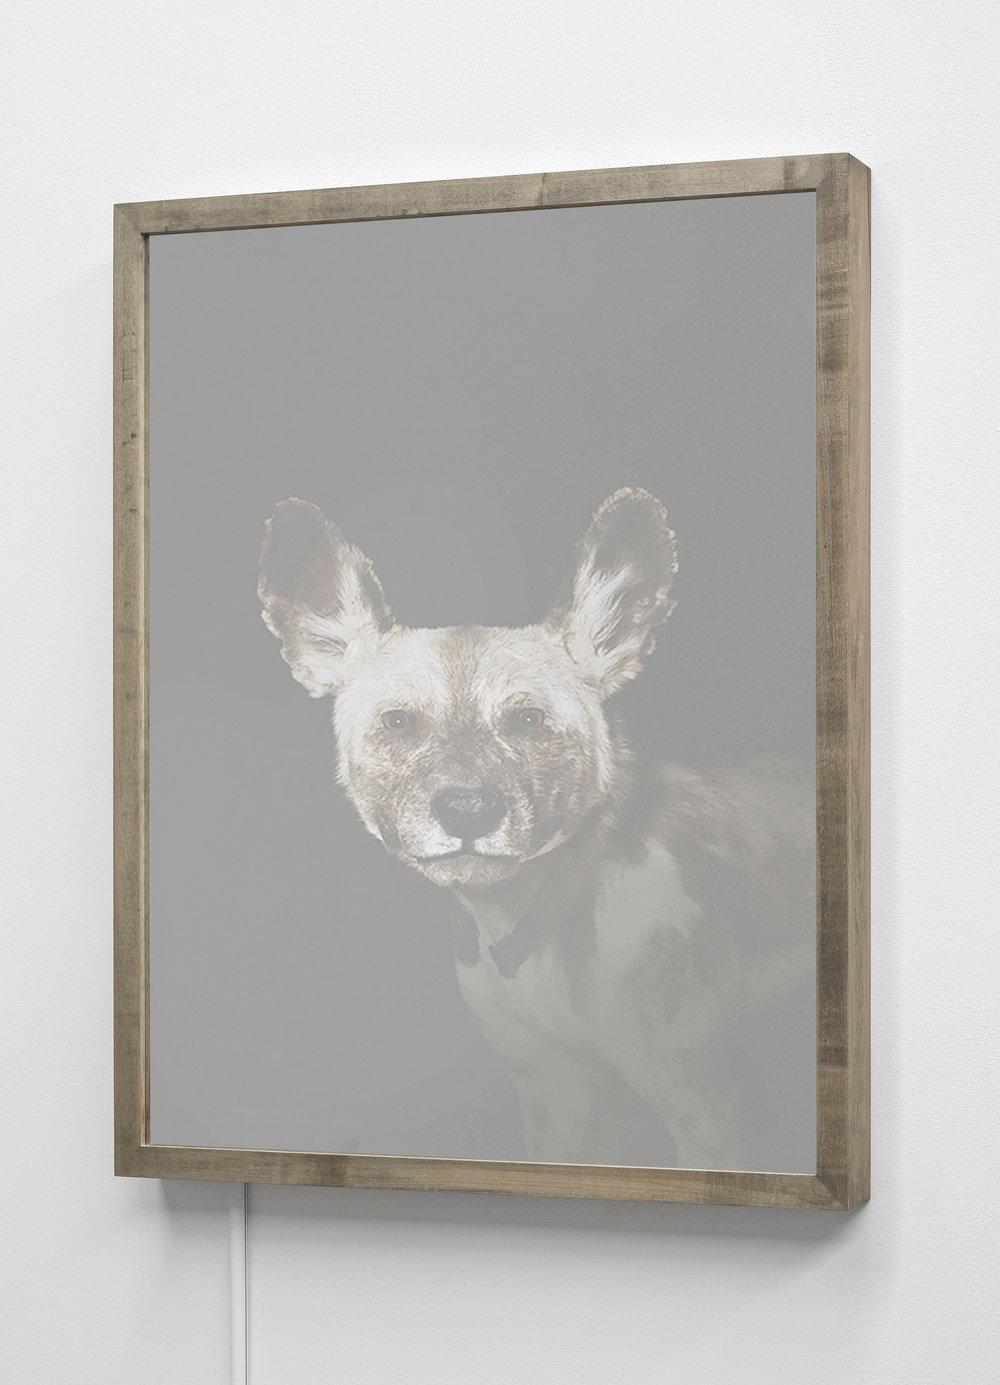 CHRISTINA SEELY  African Hunting Dog,  Lycaon pictus - Endangered Kinetic Mirrored Lightbox  Available sizes: 30 x 24 in | Edition of 3 + 1AP 20 x 16 in | Edition of 3 + 1AP